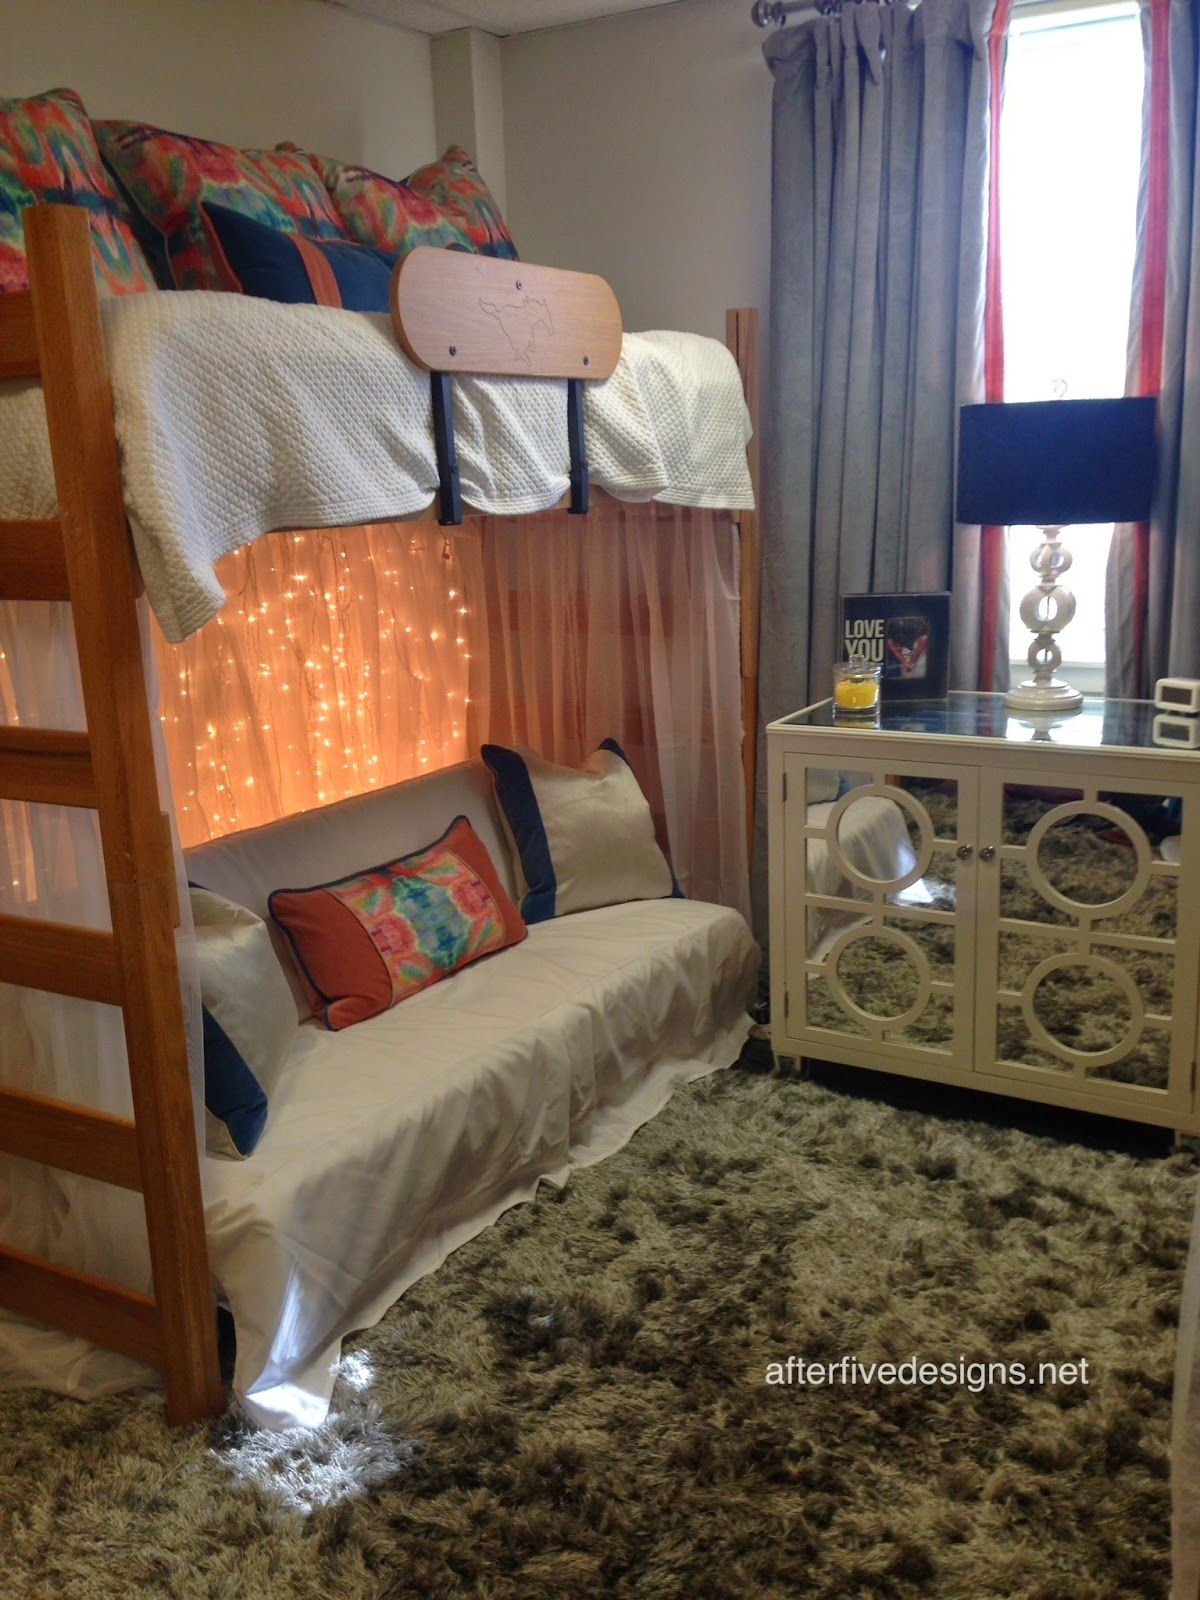 SMU Dorm Room Dorm Rooms 2014 College Stuff Pinterest